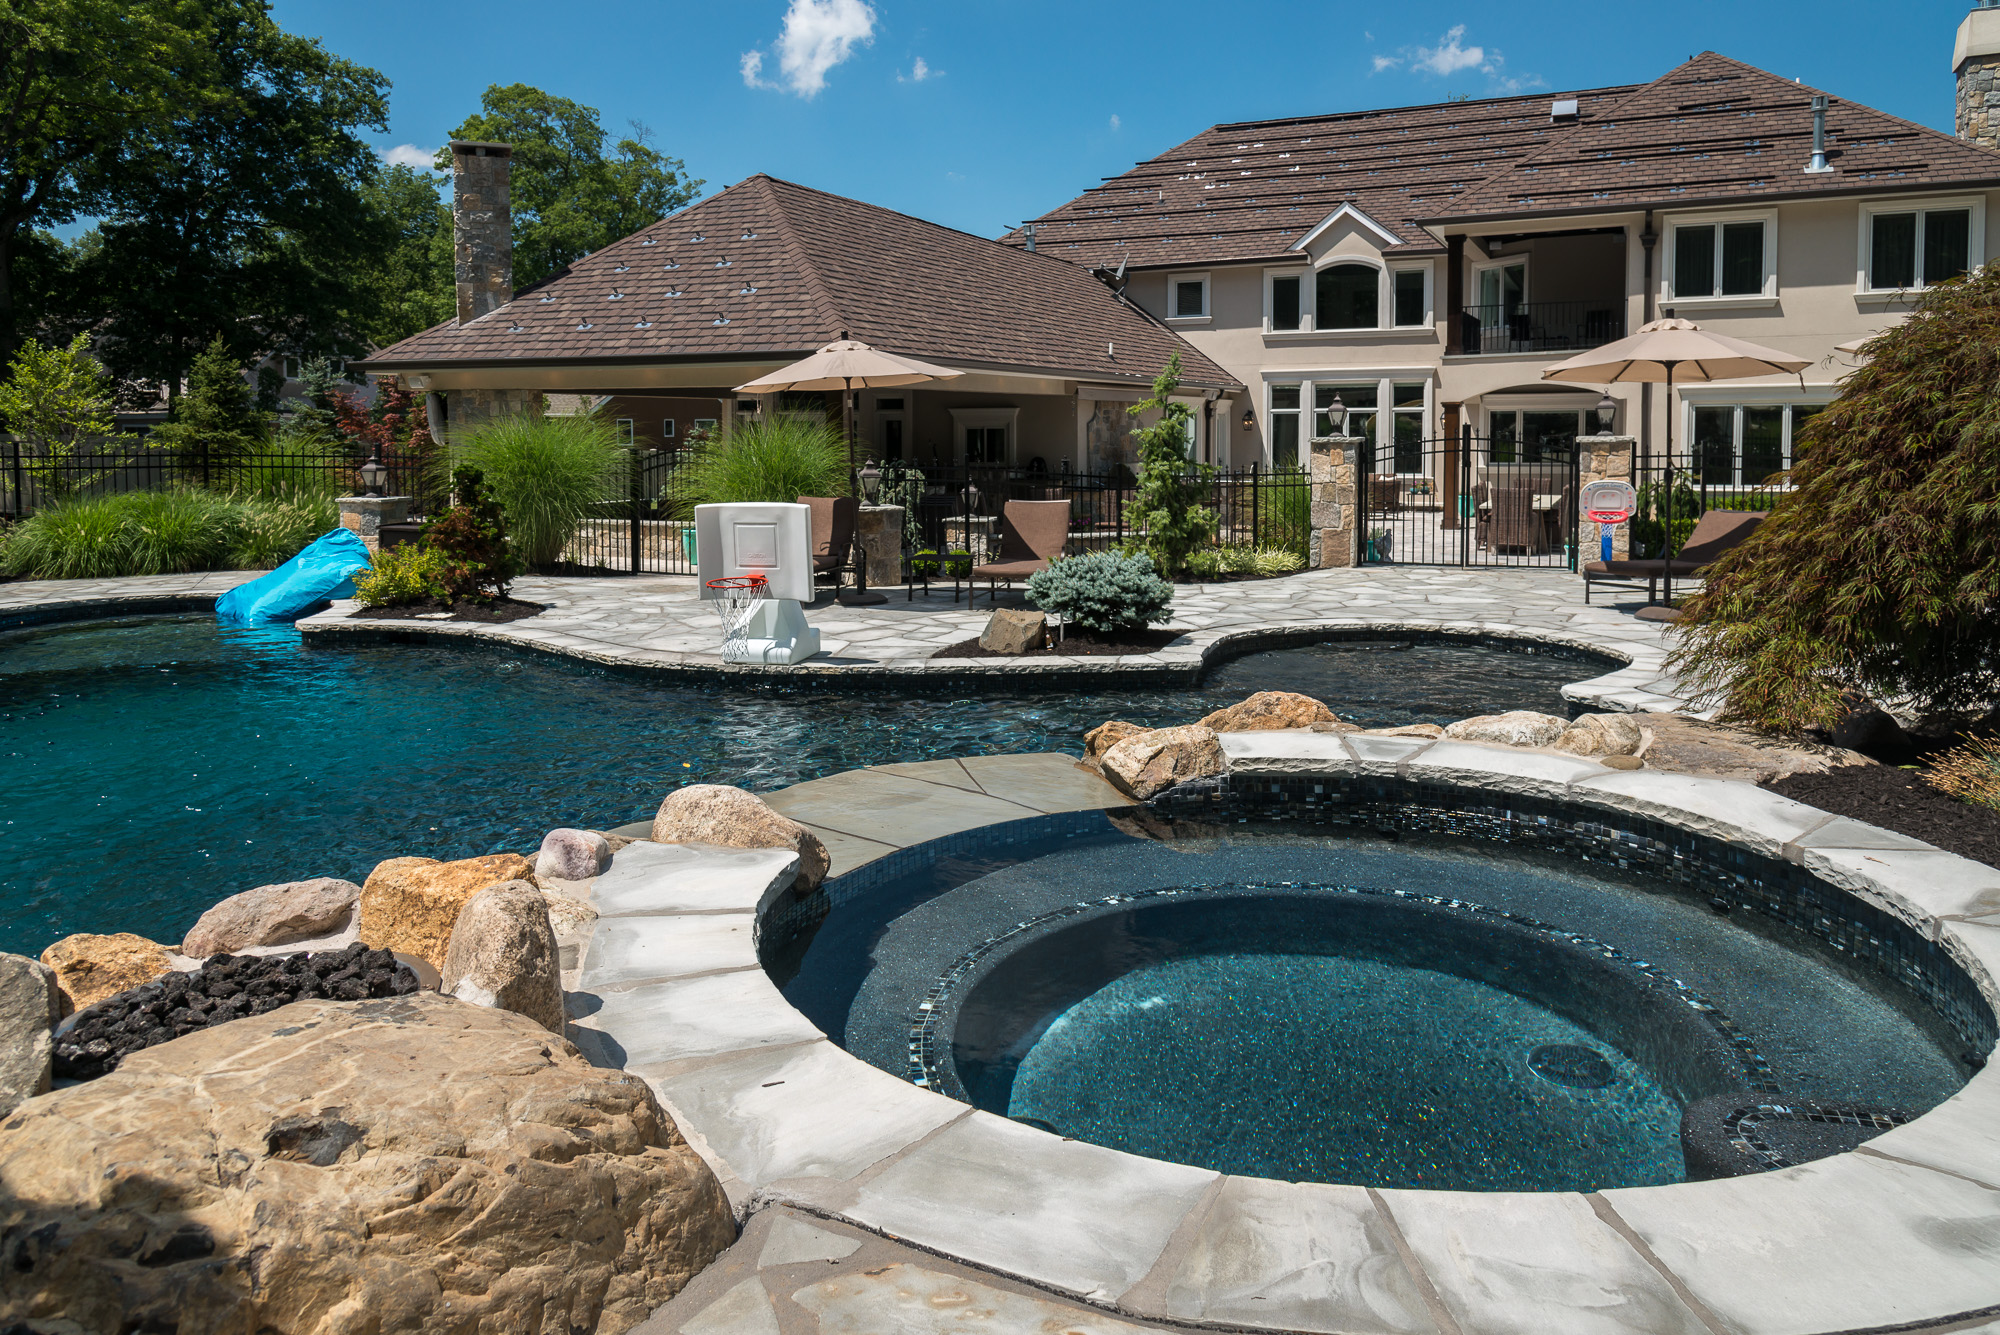 Livingston nj custom inground swimming pool design for Pool design nj